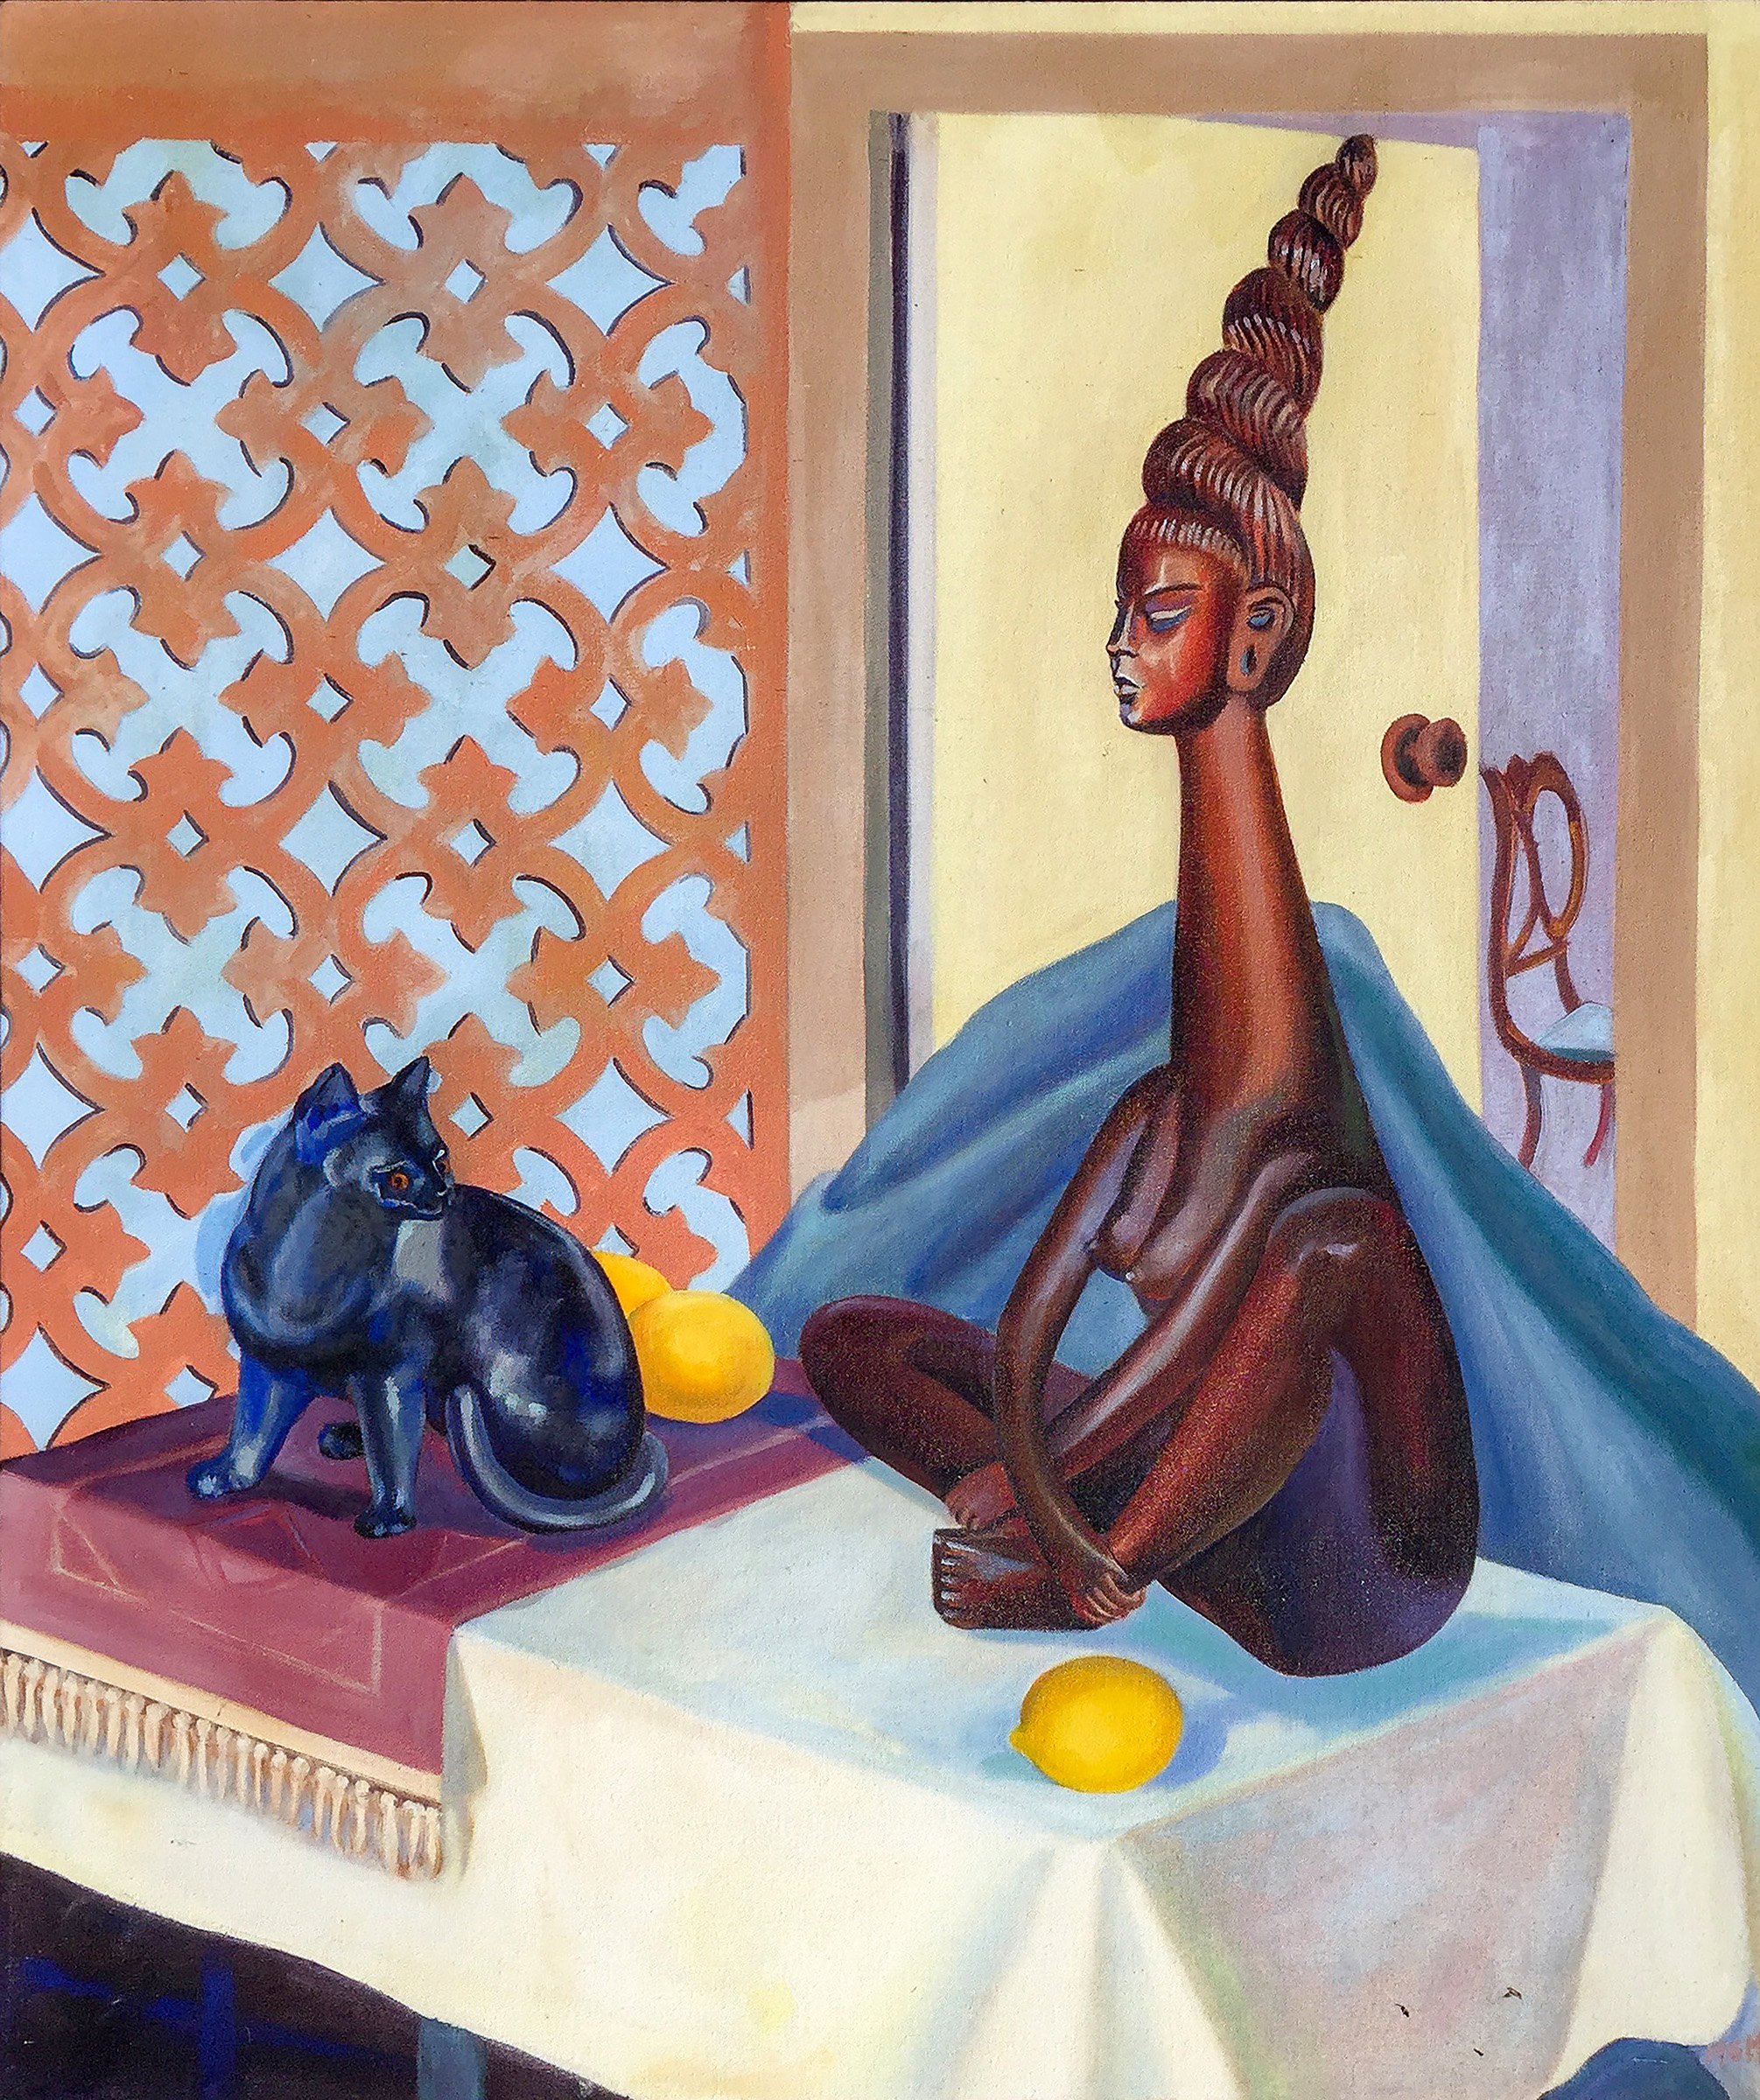 #22 Laotian lady - with black cat